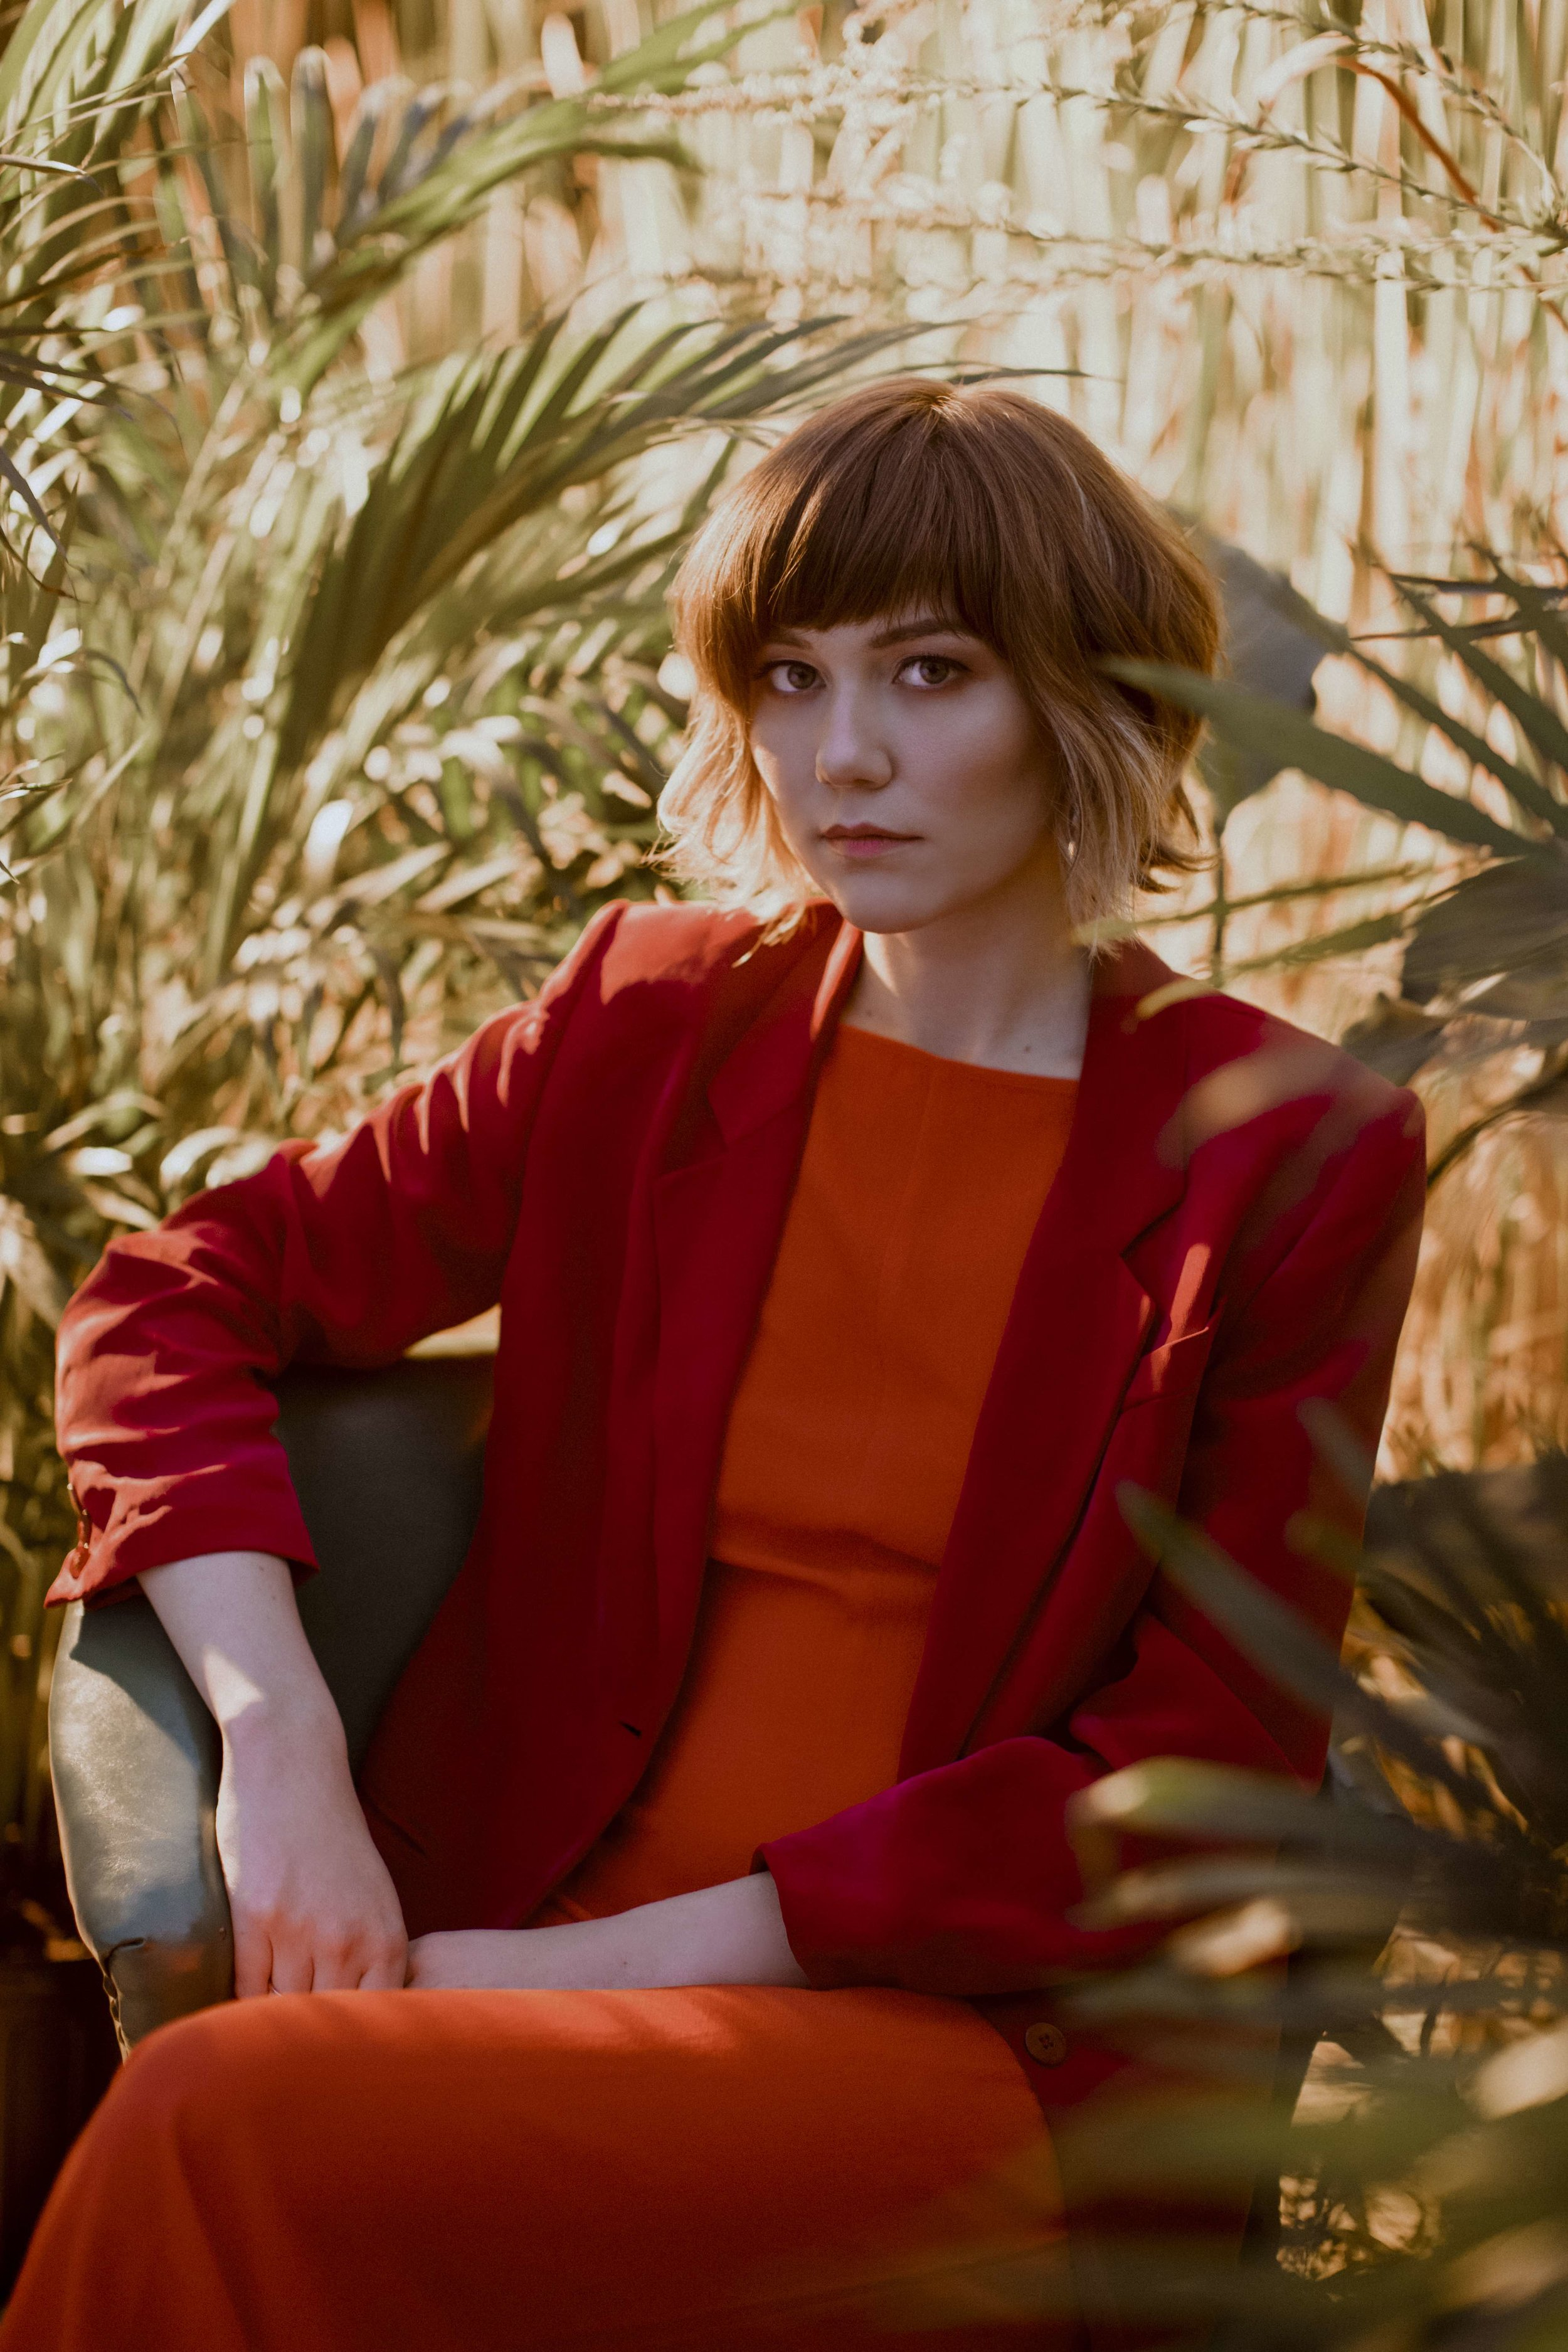 About — Molly Tuttle